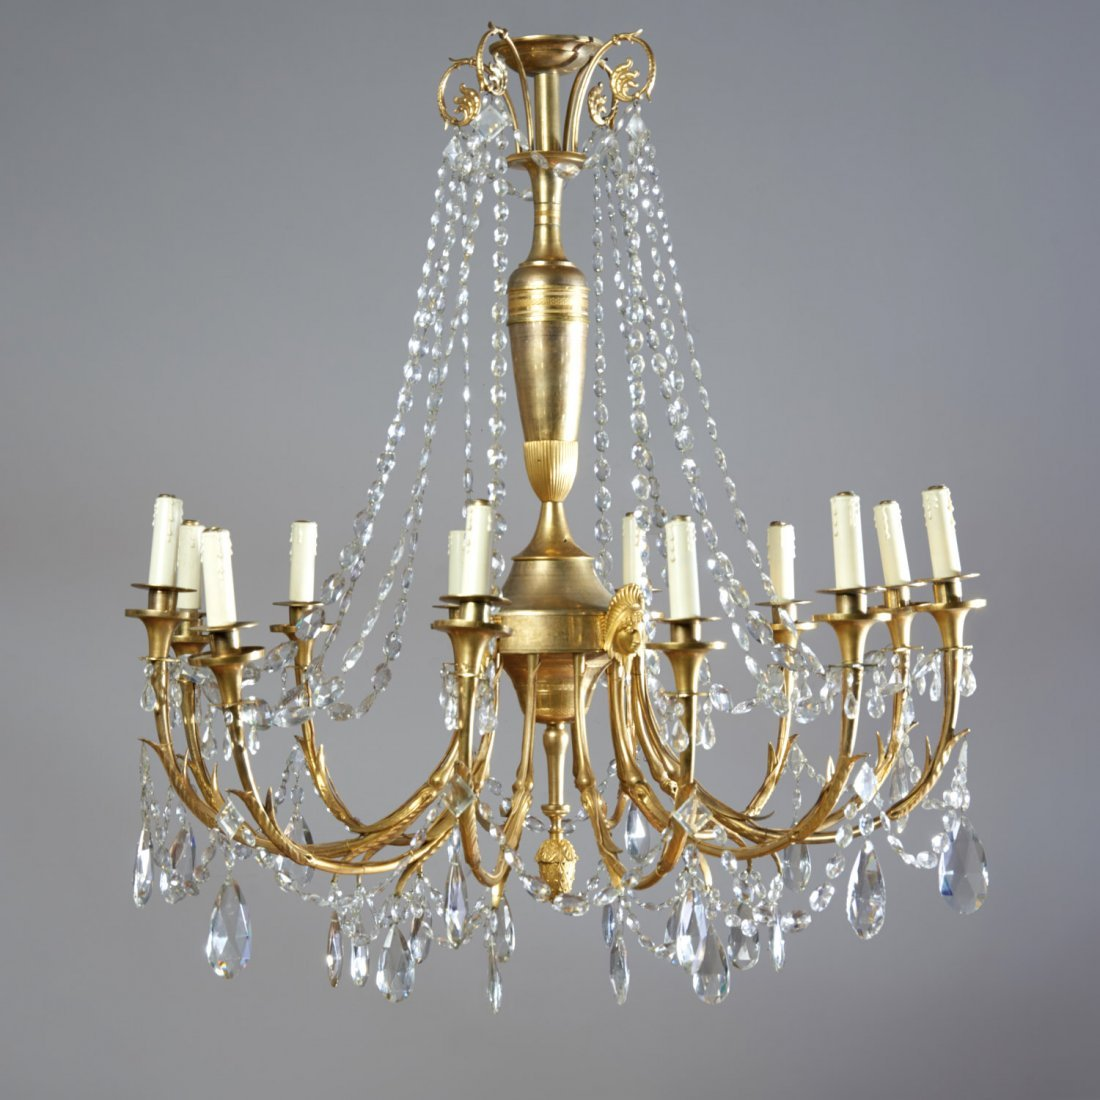 Good Regency gilt bronze 12-light chandelier